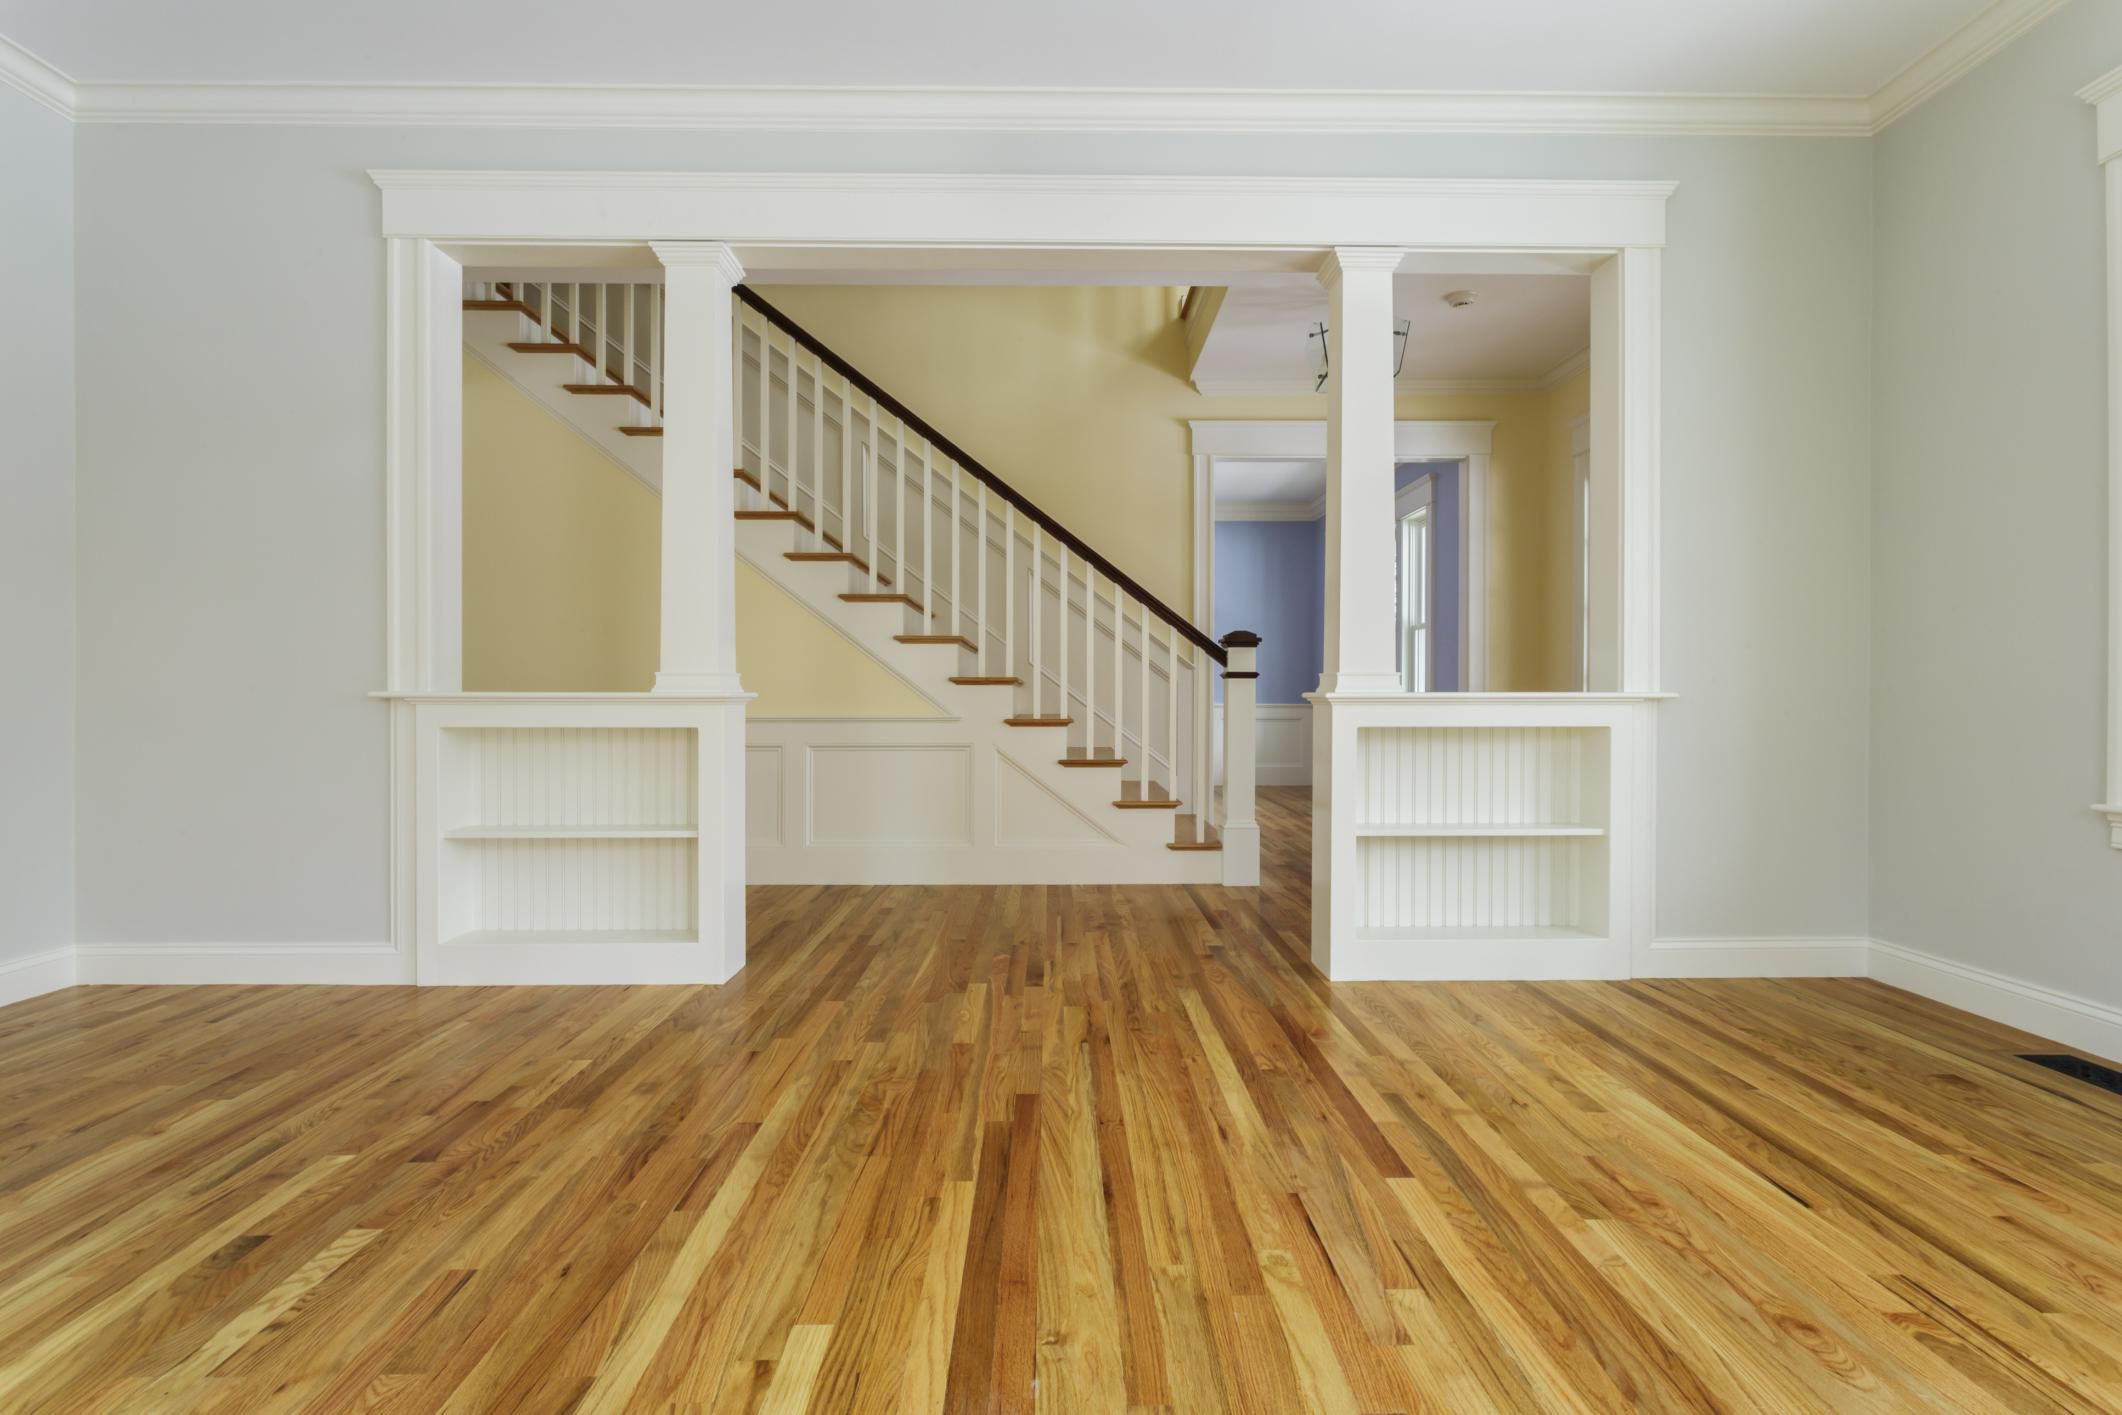 hardwood floor stain colors oak of guide to solid hardwood floors throughout 168686571 56a49f213df78cf772834e24